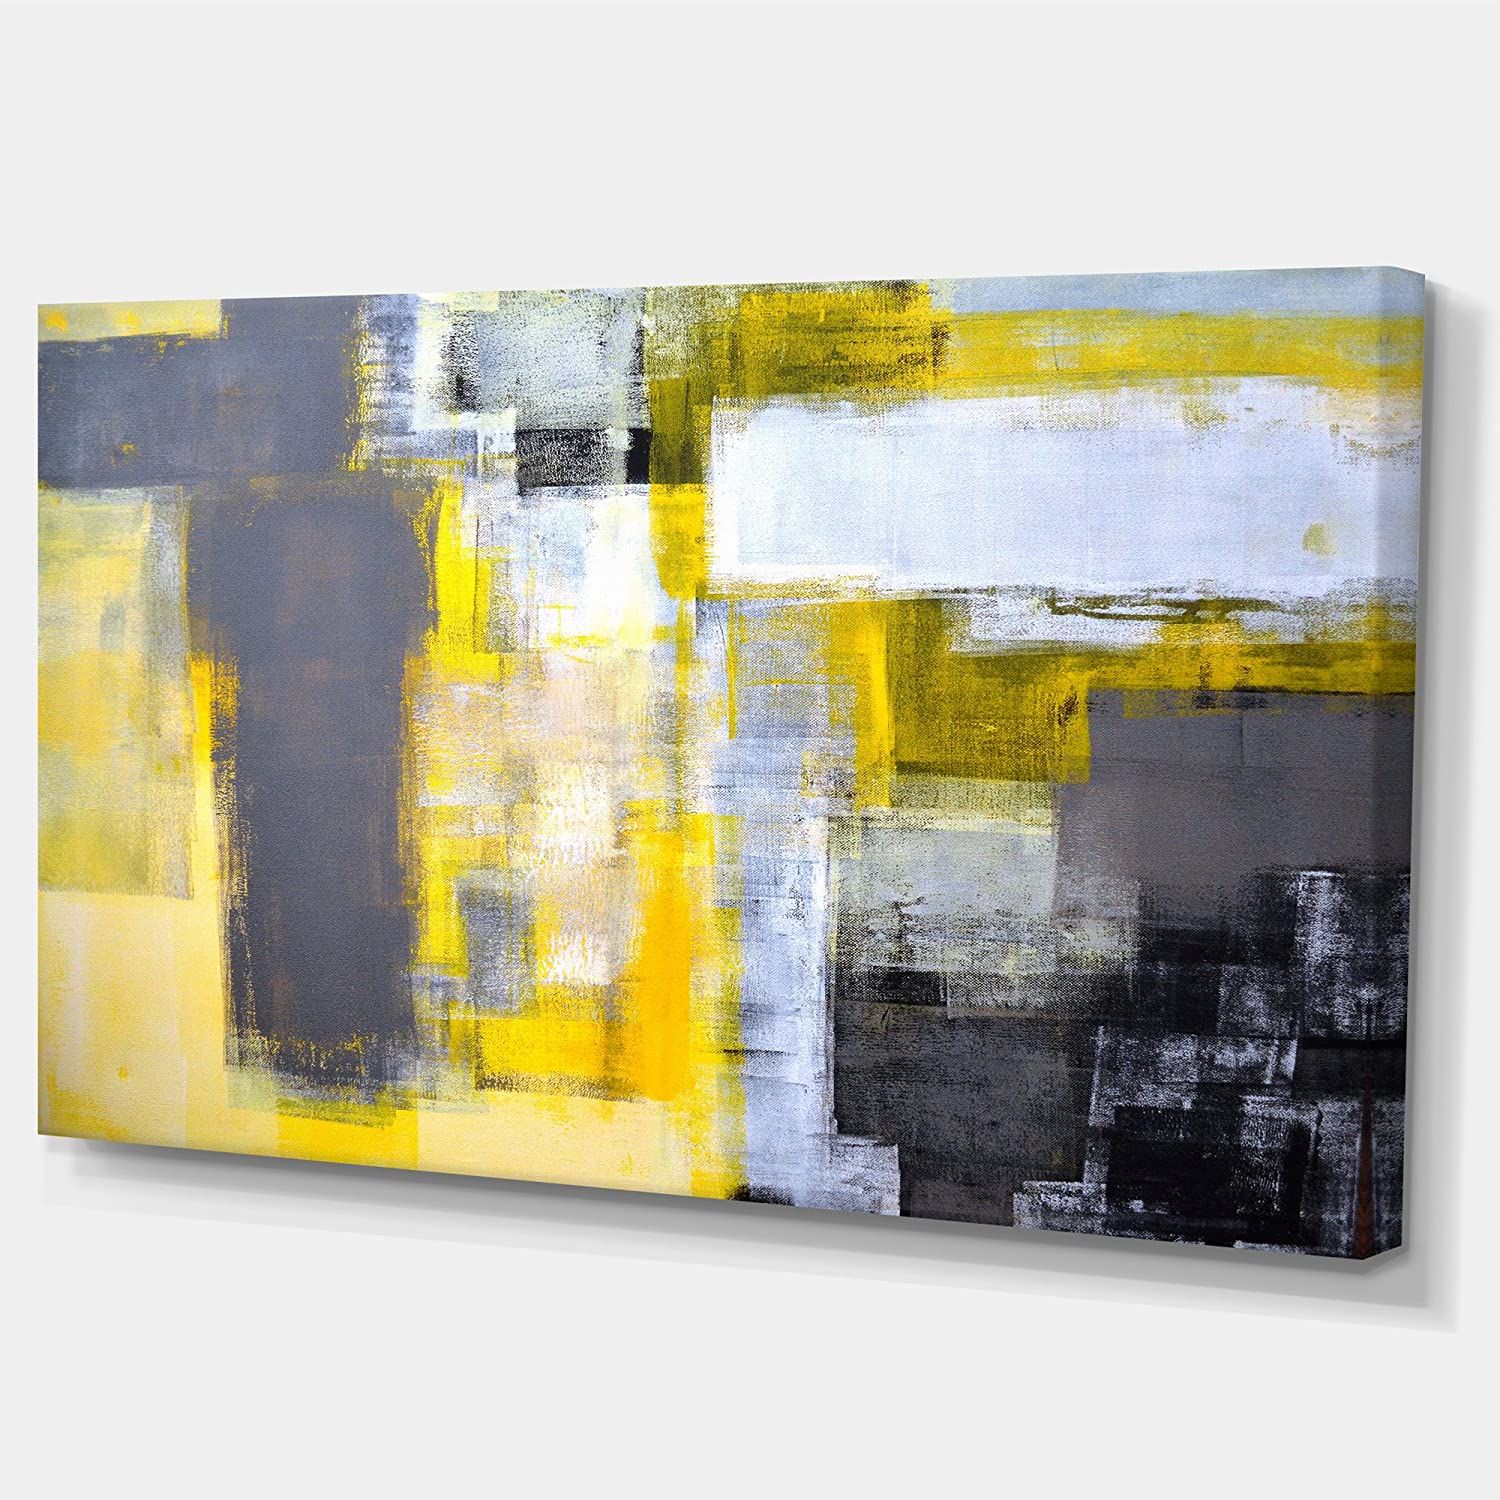 Amazon.com: Designart PT6269-32-16 - Grey and Yellow Blur Abstract ...